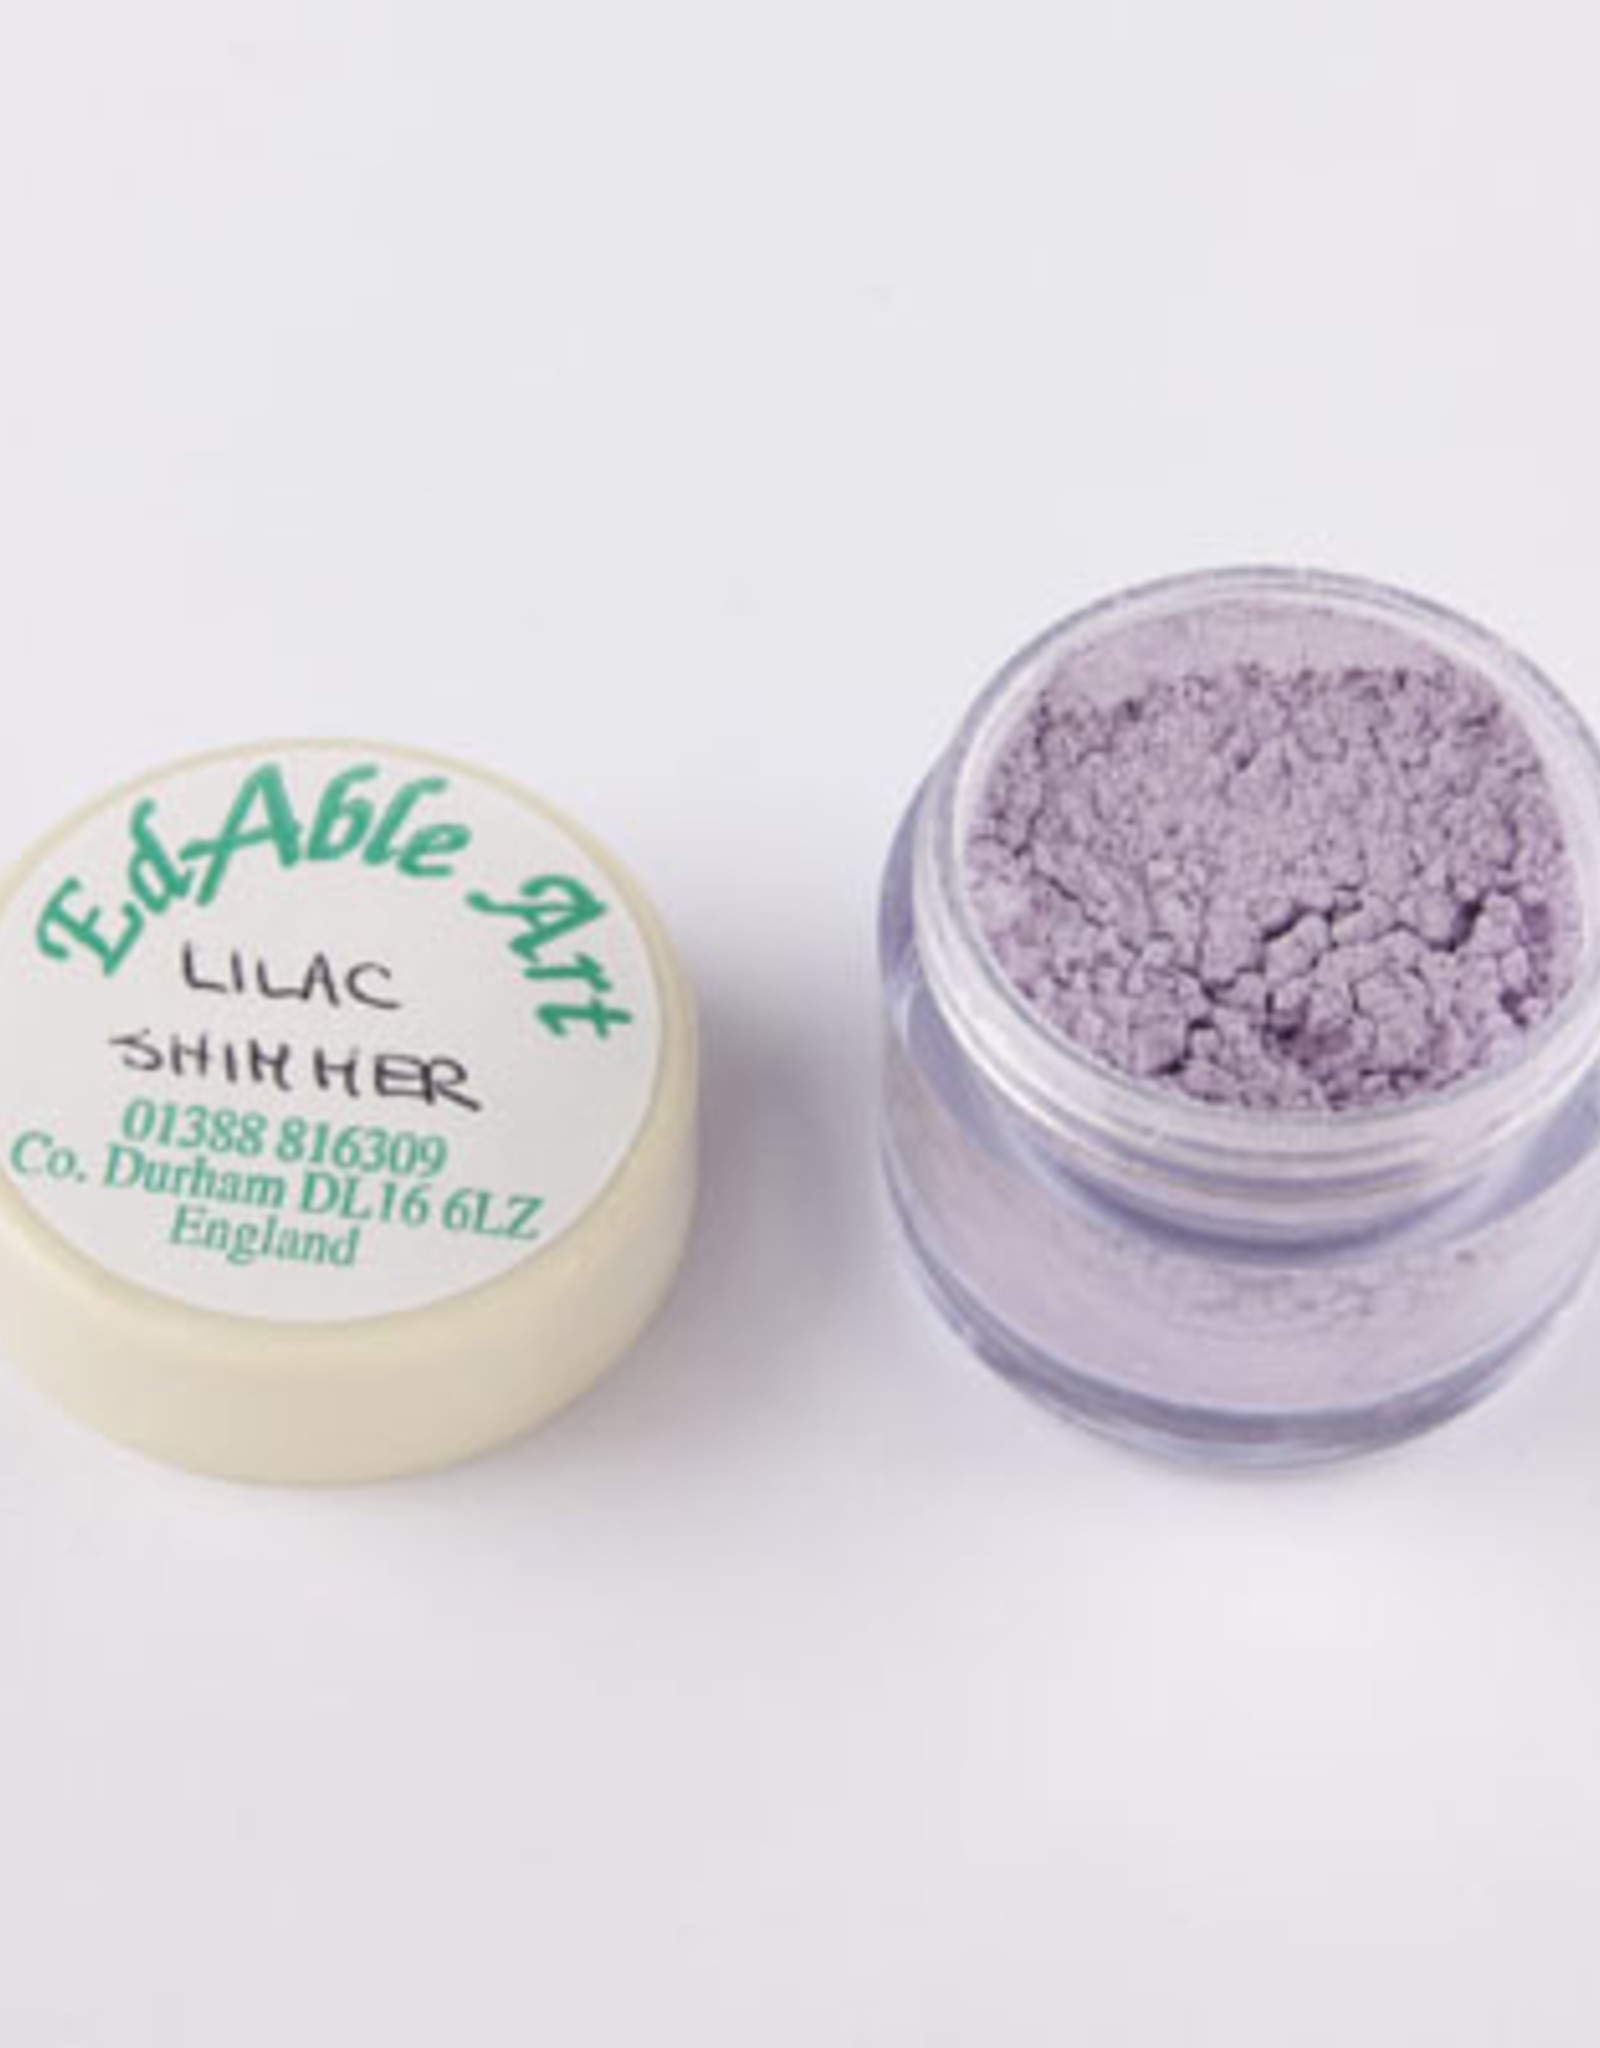 EdAble Art EdAble Art Tints & Pearls Lilac Shimmer